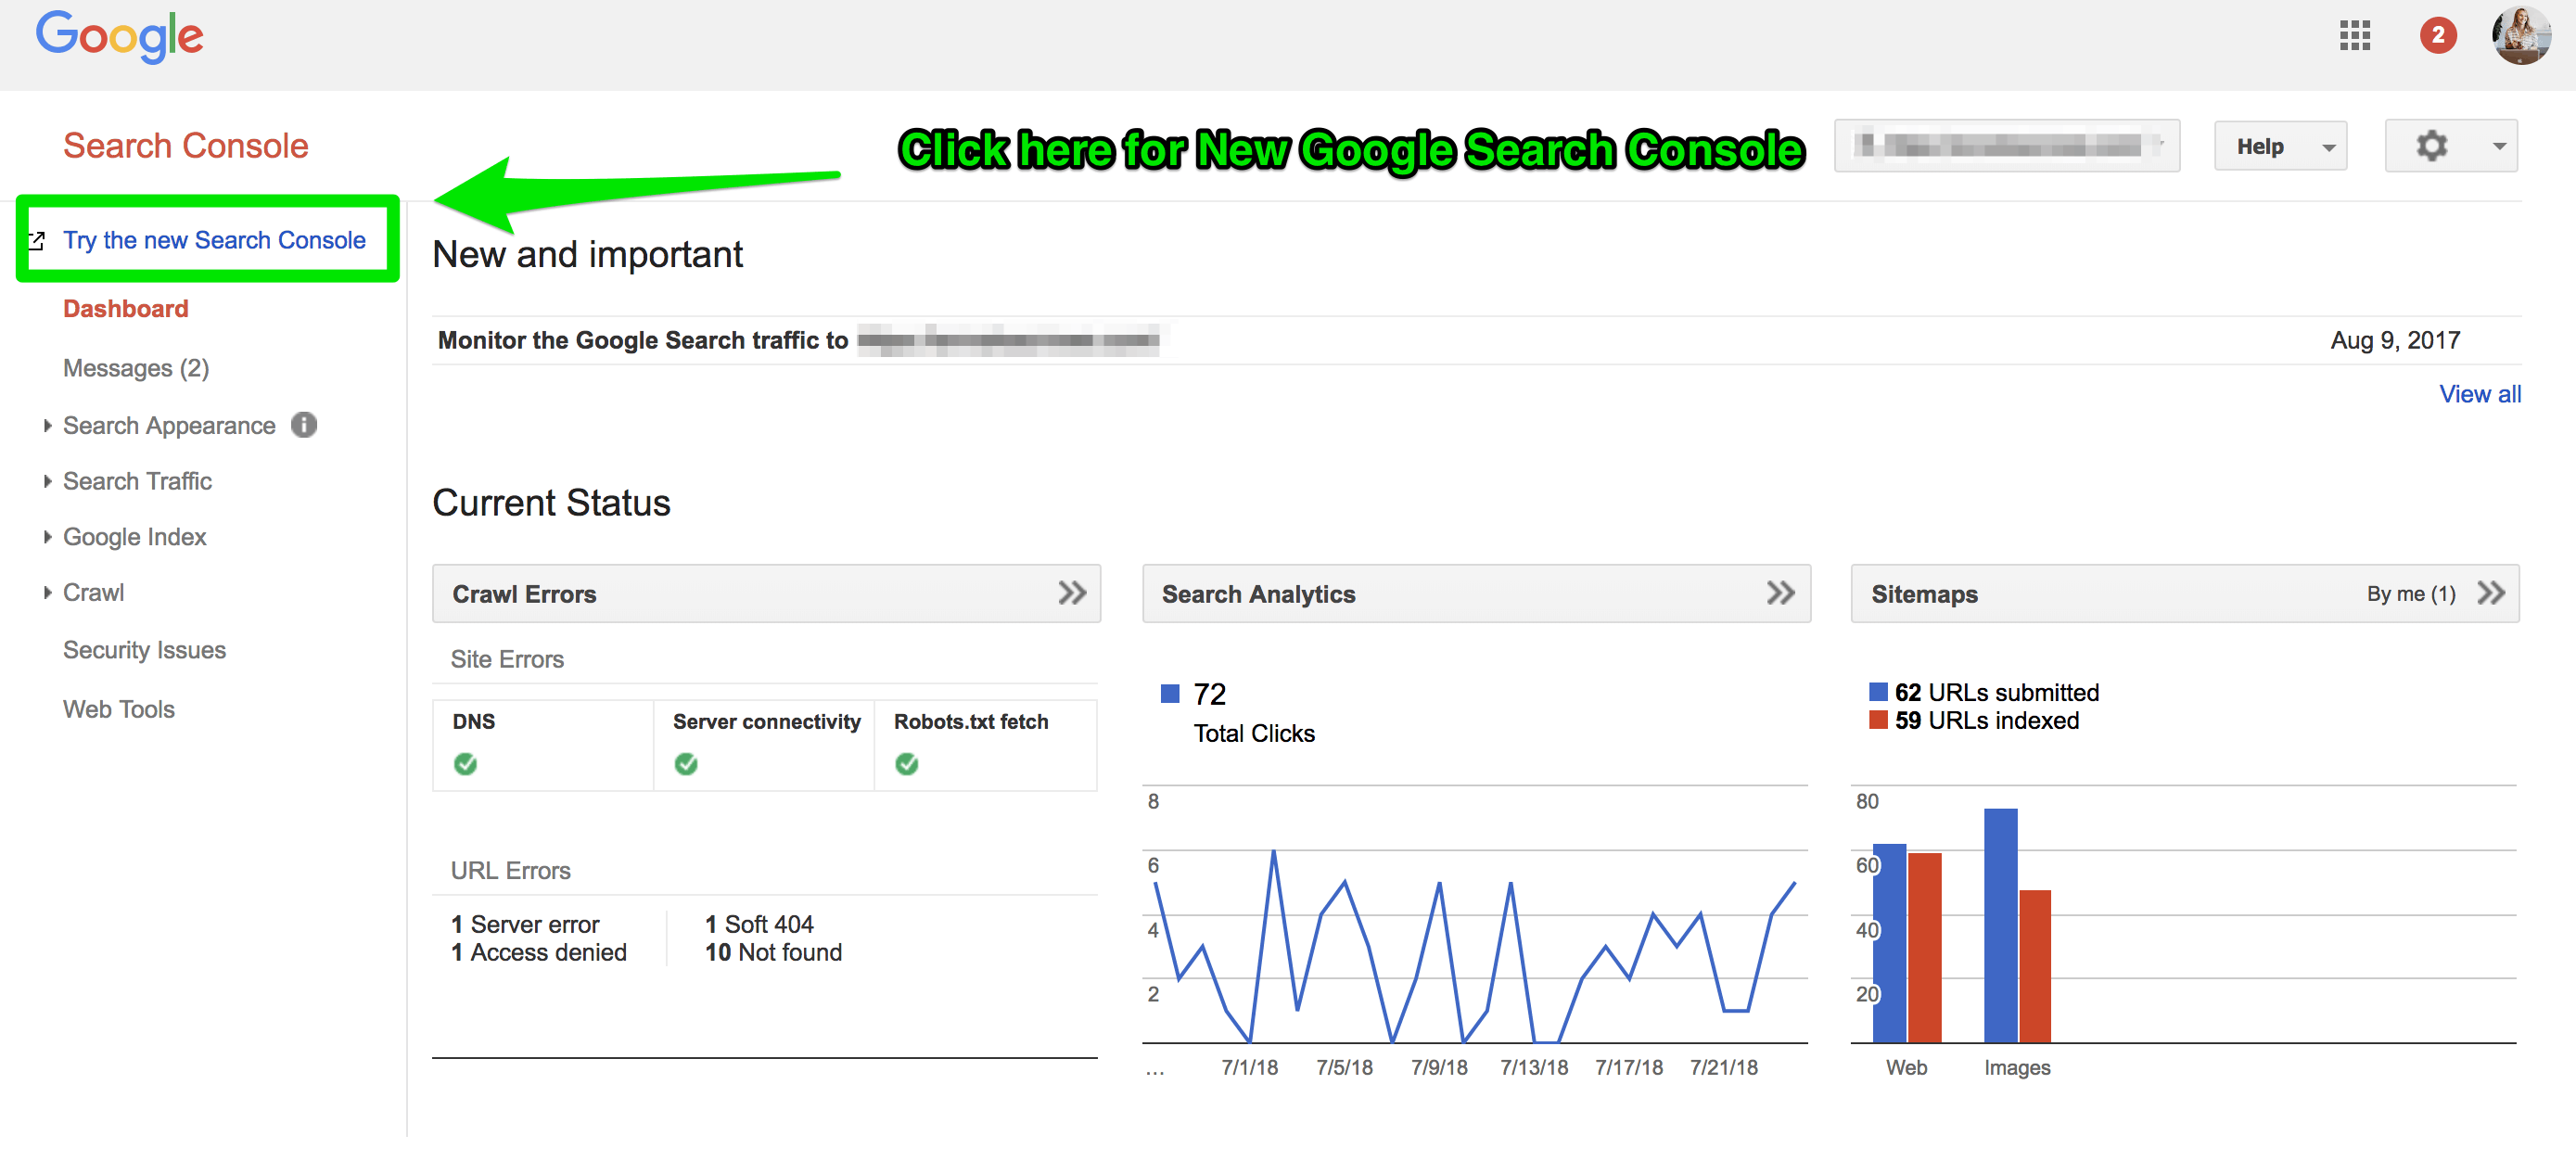 where-to-find-new-google-search-console